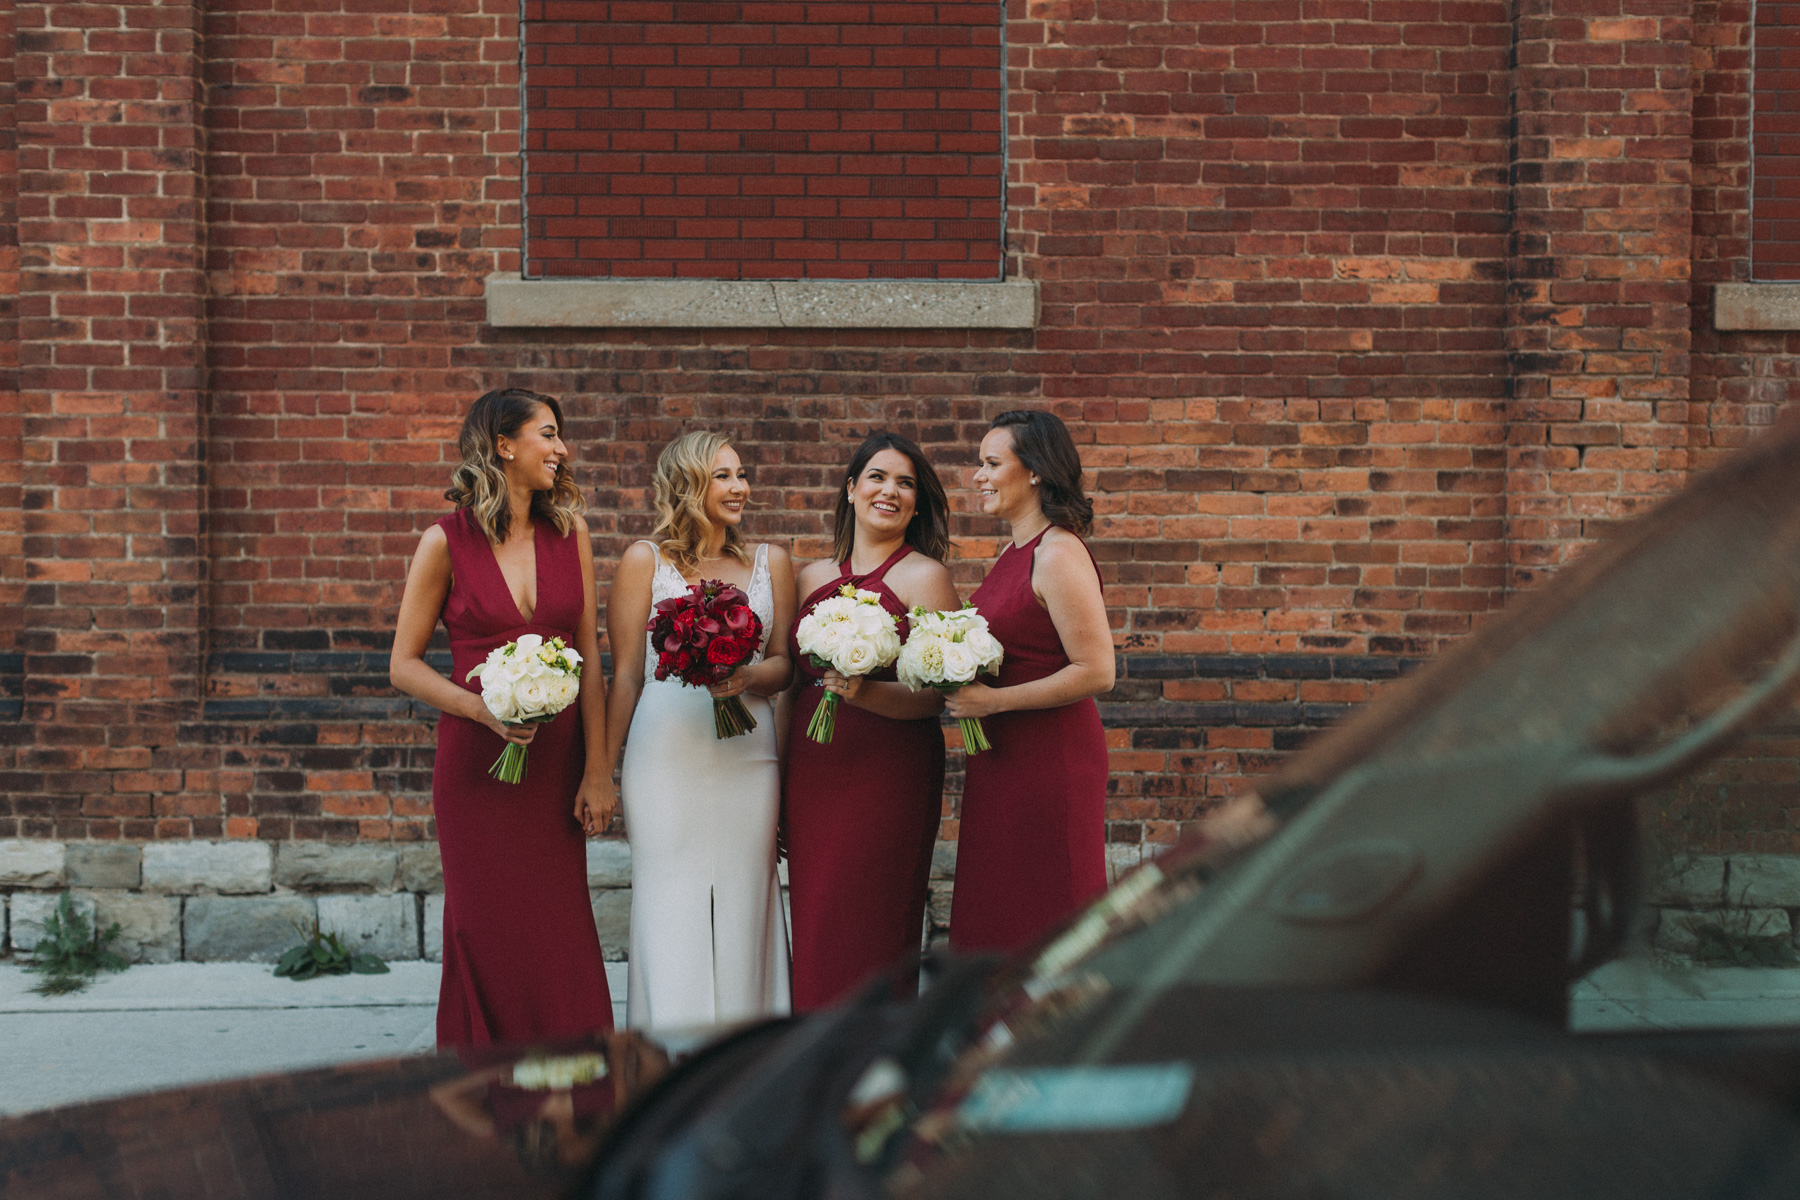 Thompson-Landry-Gallery-wedding-photos-Toronto-by-Sam-Wong-of-Artanis-Collective-Polina-Zarko_0023.jpg